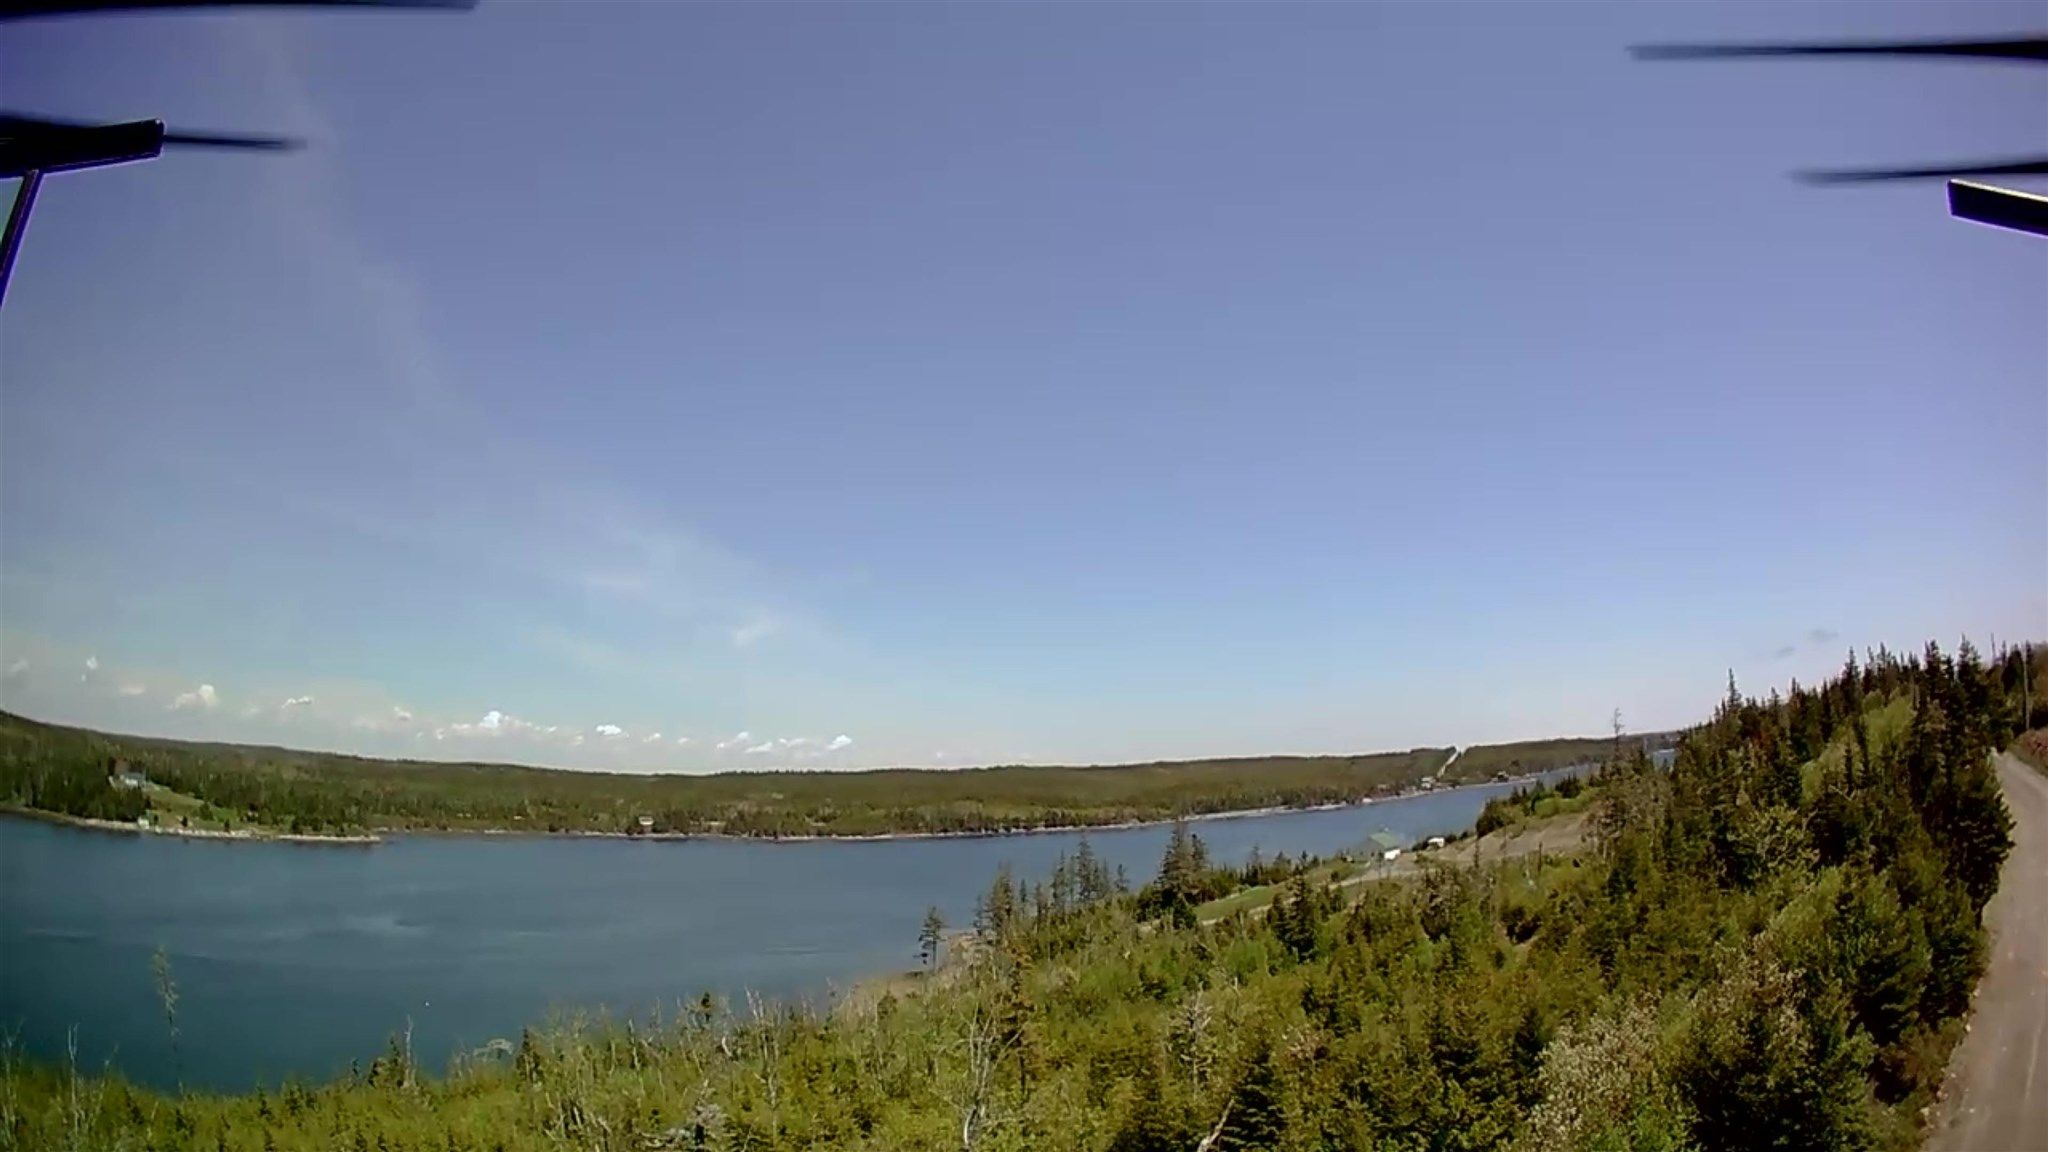 Main Photo: Lot 1 West Liscomb Point in West Liscomb: 303-Guysborough County Vacant Land for sale (Highland Region)  : MLS®# 202114674